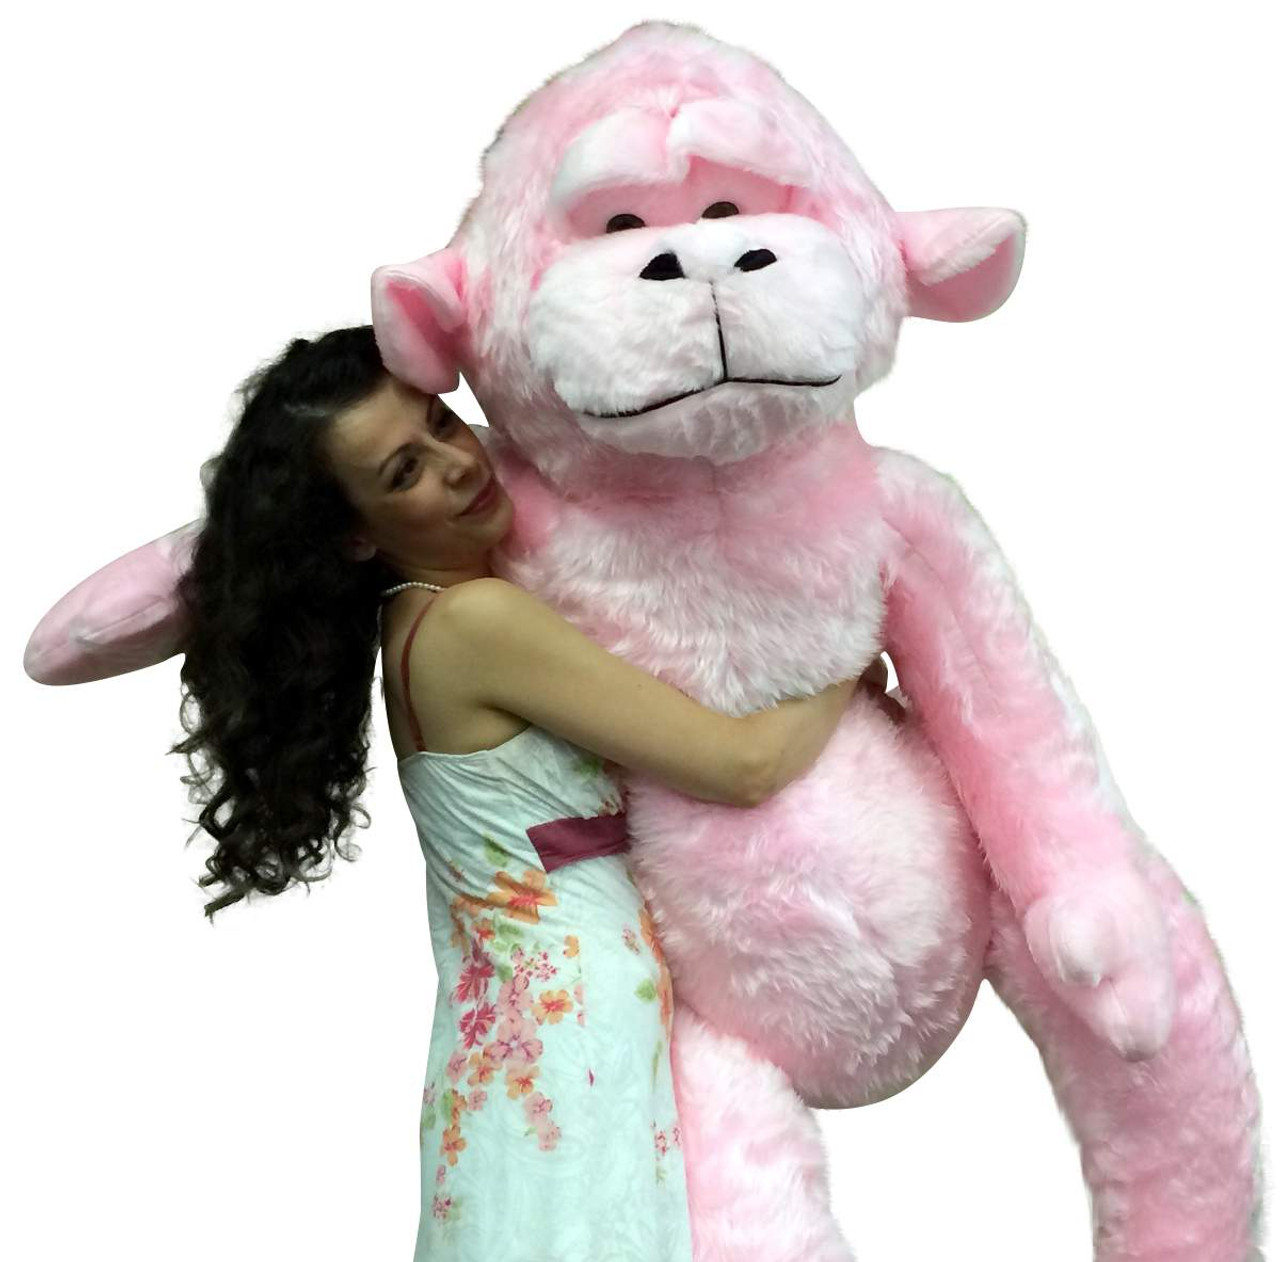 giant stuffed 6 foot pink gorilla 72 inch soft huge plush monkey made in usa big plush. Black Bedroom Furniture Sets. Home Design Ideas